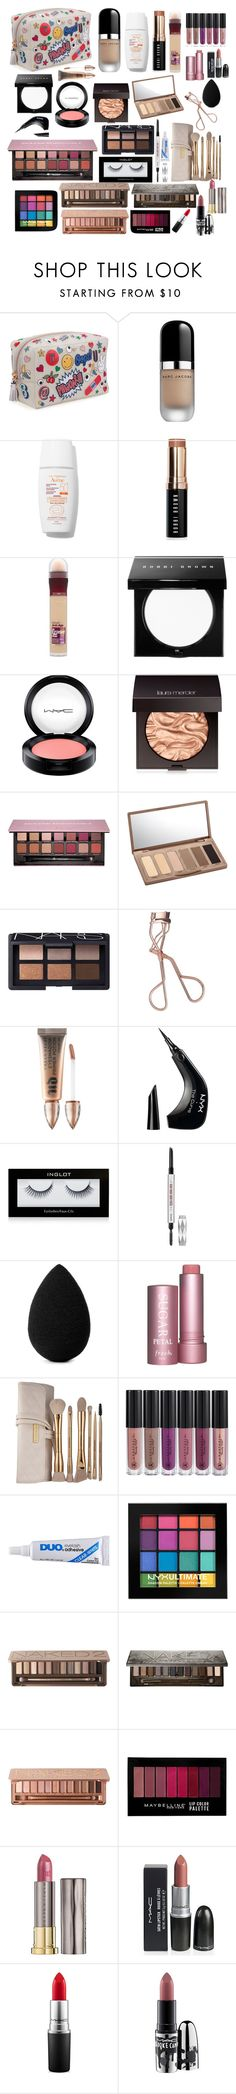 """Untitled #102"" by lauracruzsoriano-2 on Polyvore featuring beauty, Anya Hindmarch, Marc Jacobs, Bobbi Brown Cosmetics, Maybelline, MAC Cosmetics, Laura Mercier, Anastasia Beverly Hills, Urban Decay and NARS Cosmetics"